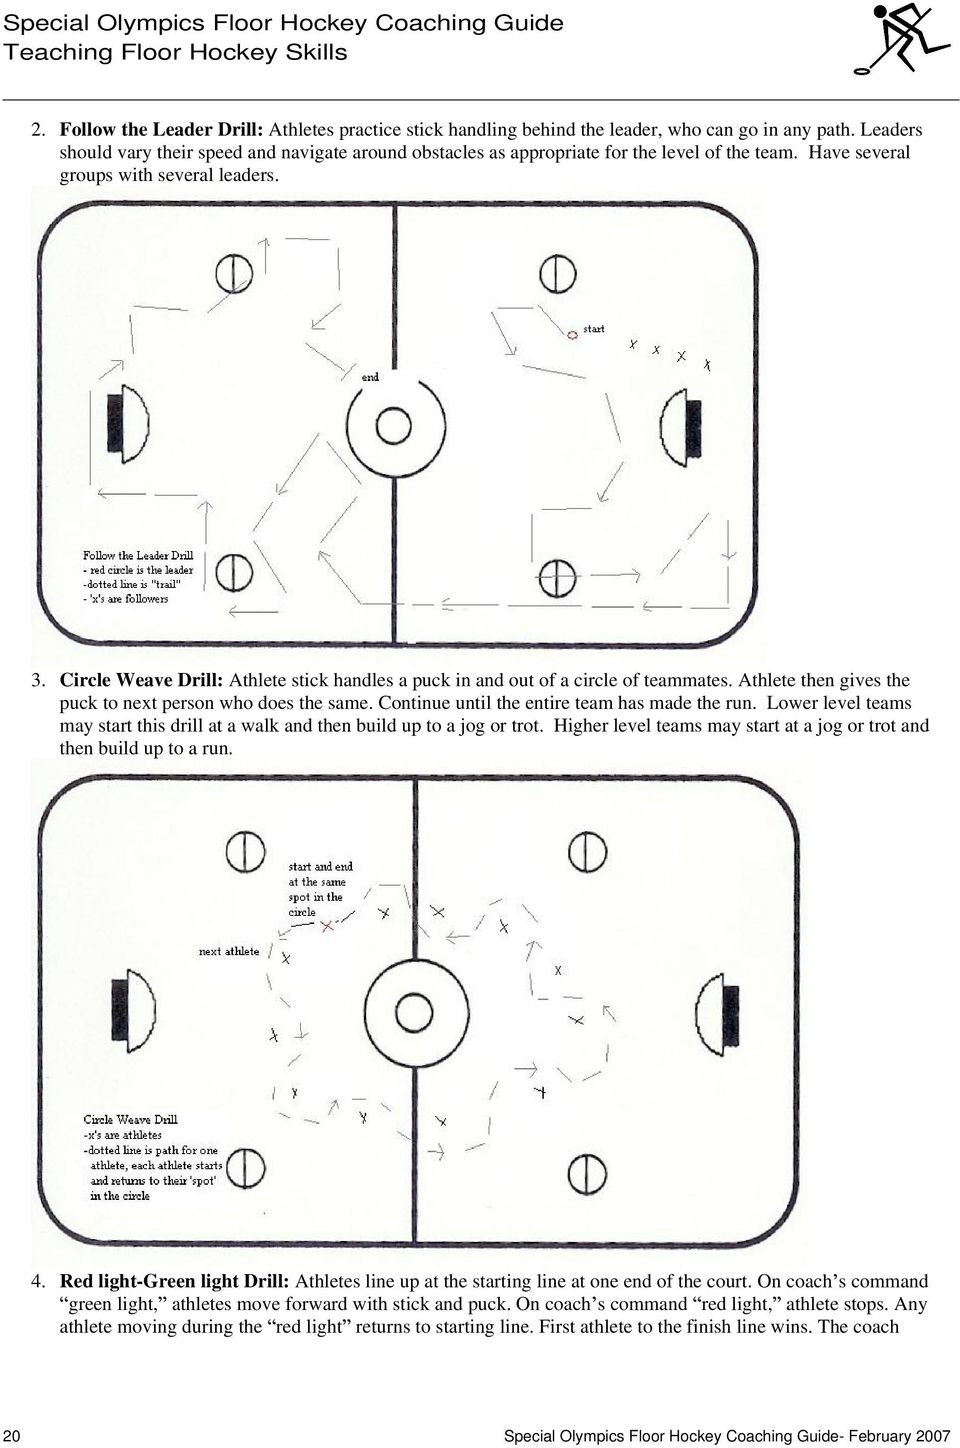 Floor Hockey Coaching Guide Teaching Skills Pdf Jog Push Button The Forward Motor Starter Reverse Circle Weave Drill Athlete Stick Handles A Puck In And Out Of